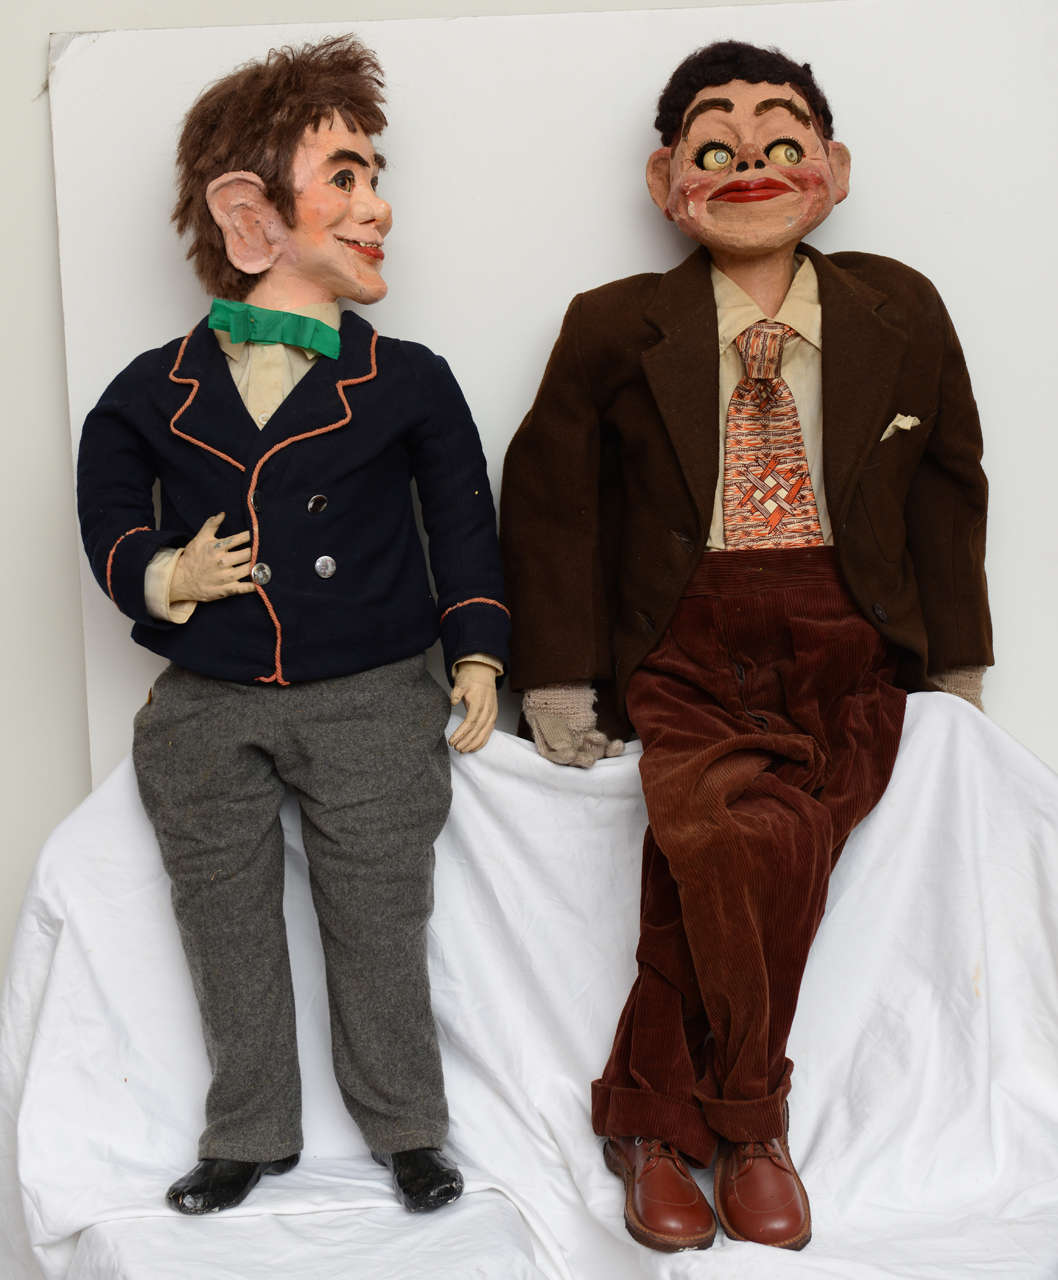 Pair of Ventriloquist Dummies image 8